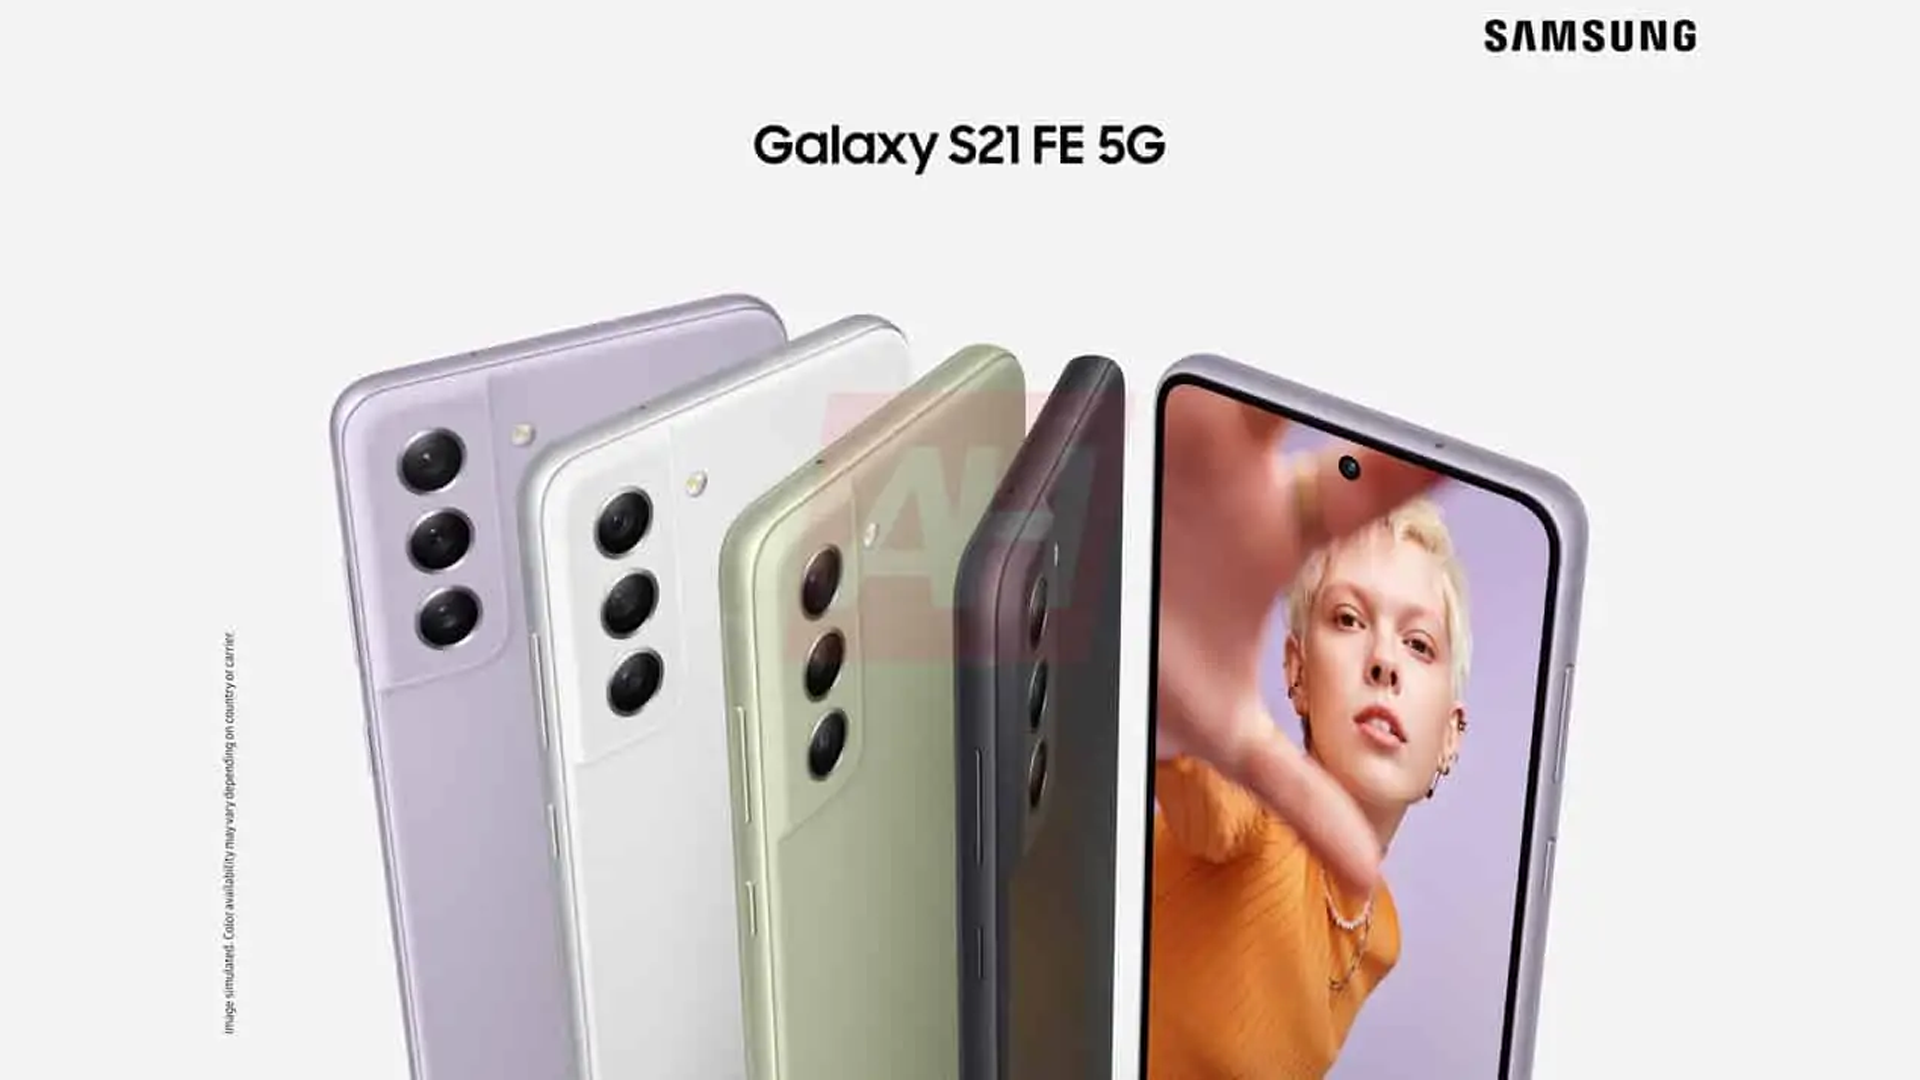 A leaked render of the Galaxy S21 FE ad.